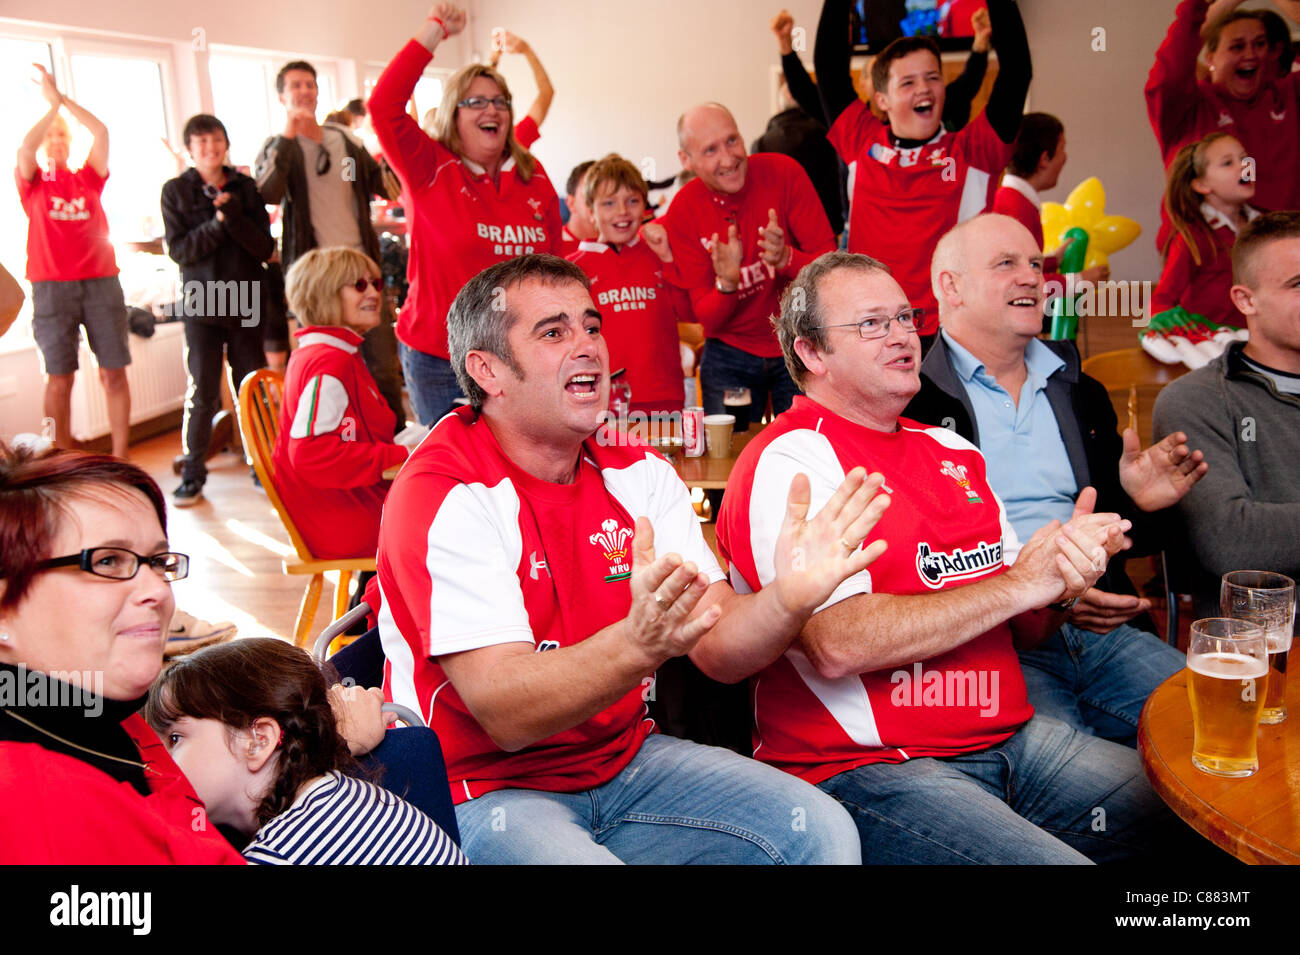 Aberystwyth Rugby club, Wales UK. 15 Oct 2011. Welsh rugby fans watch the Rugby World cup semi final match between - Stock Image